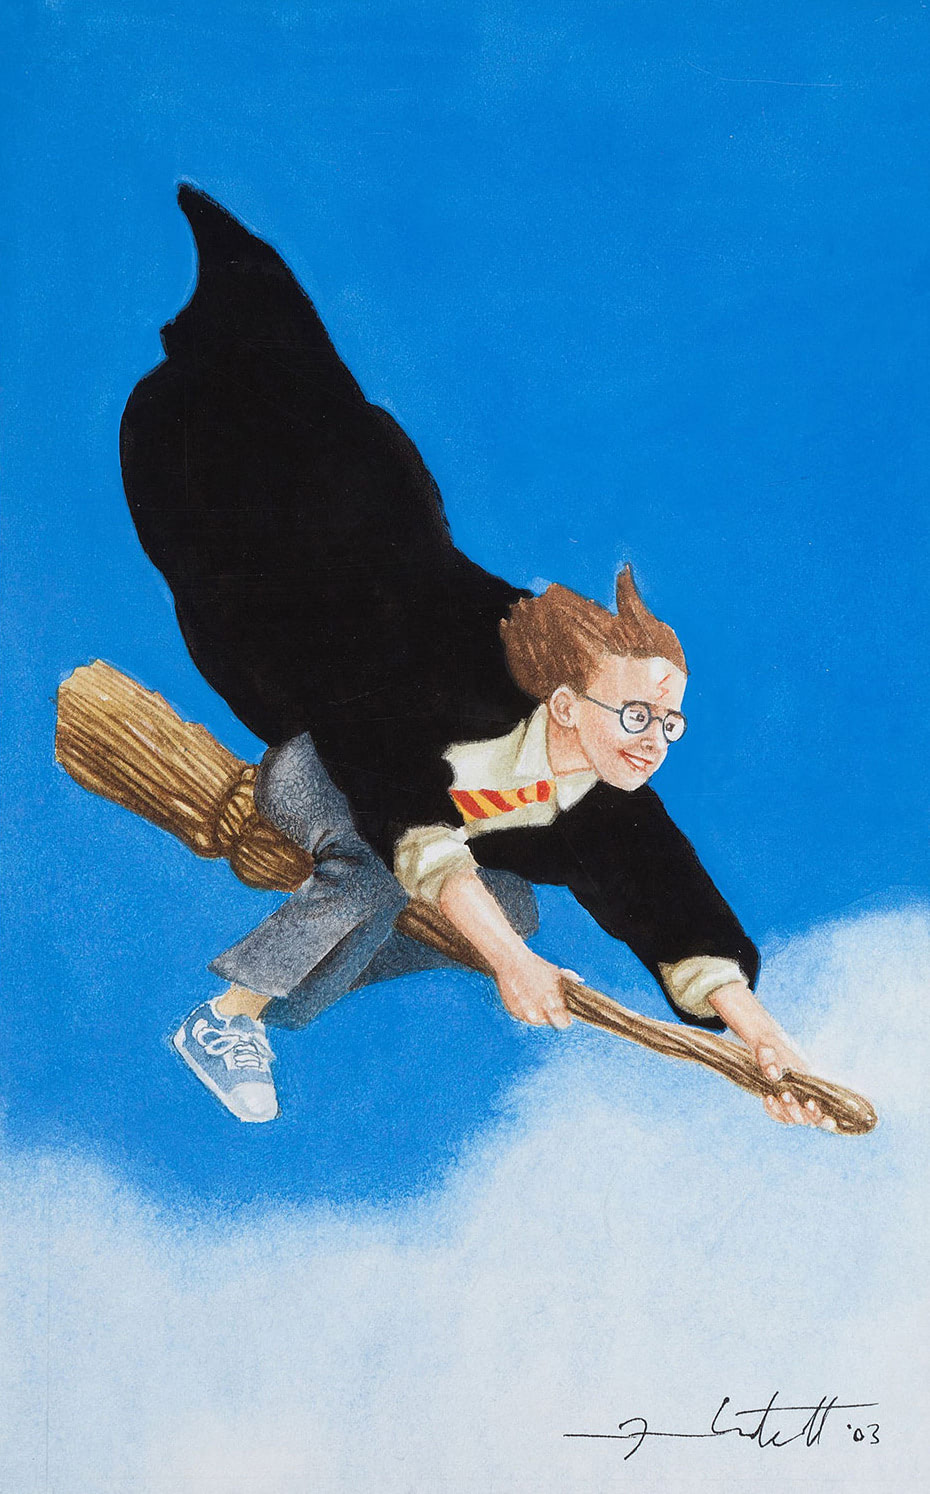 Harry riding his broom (Jason Cockroft illustration)